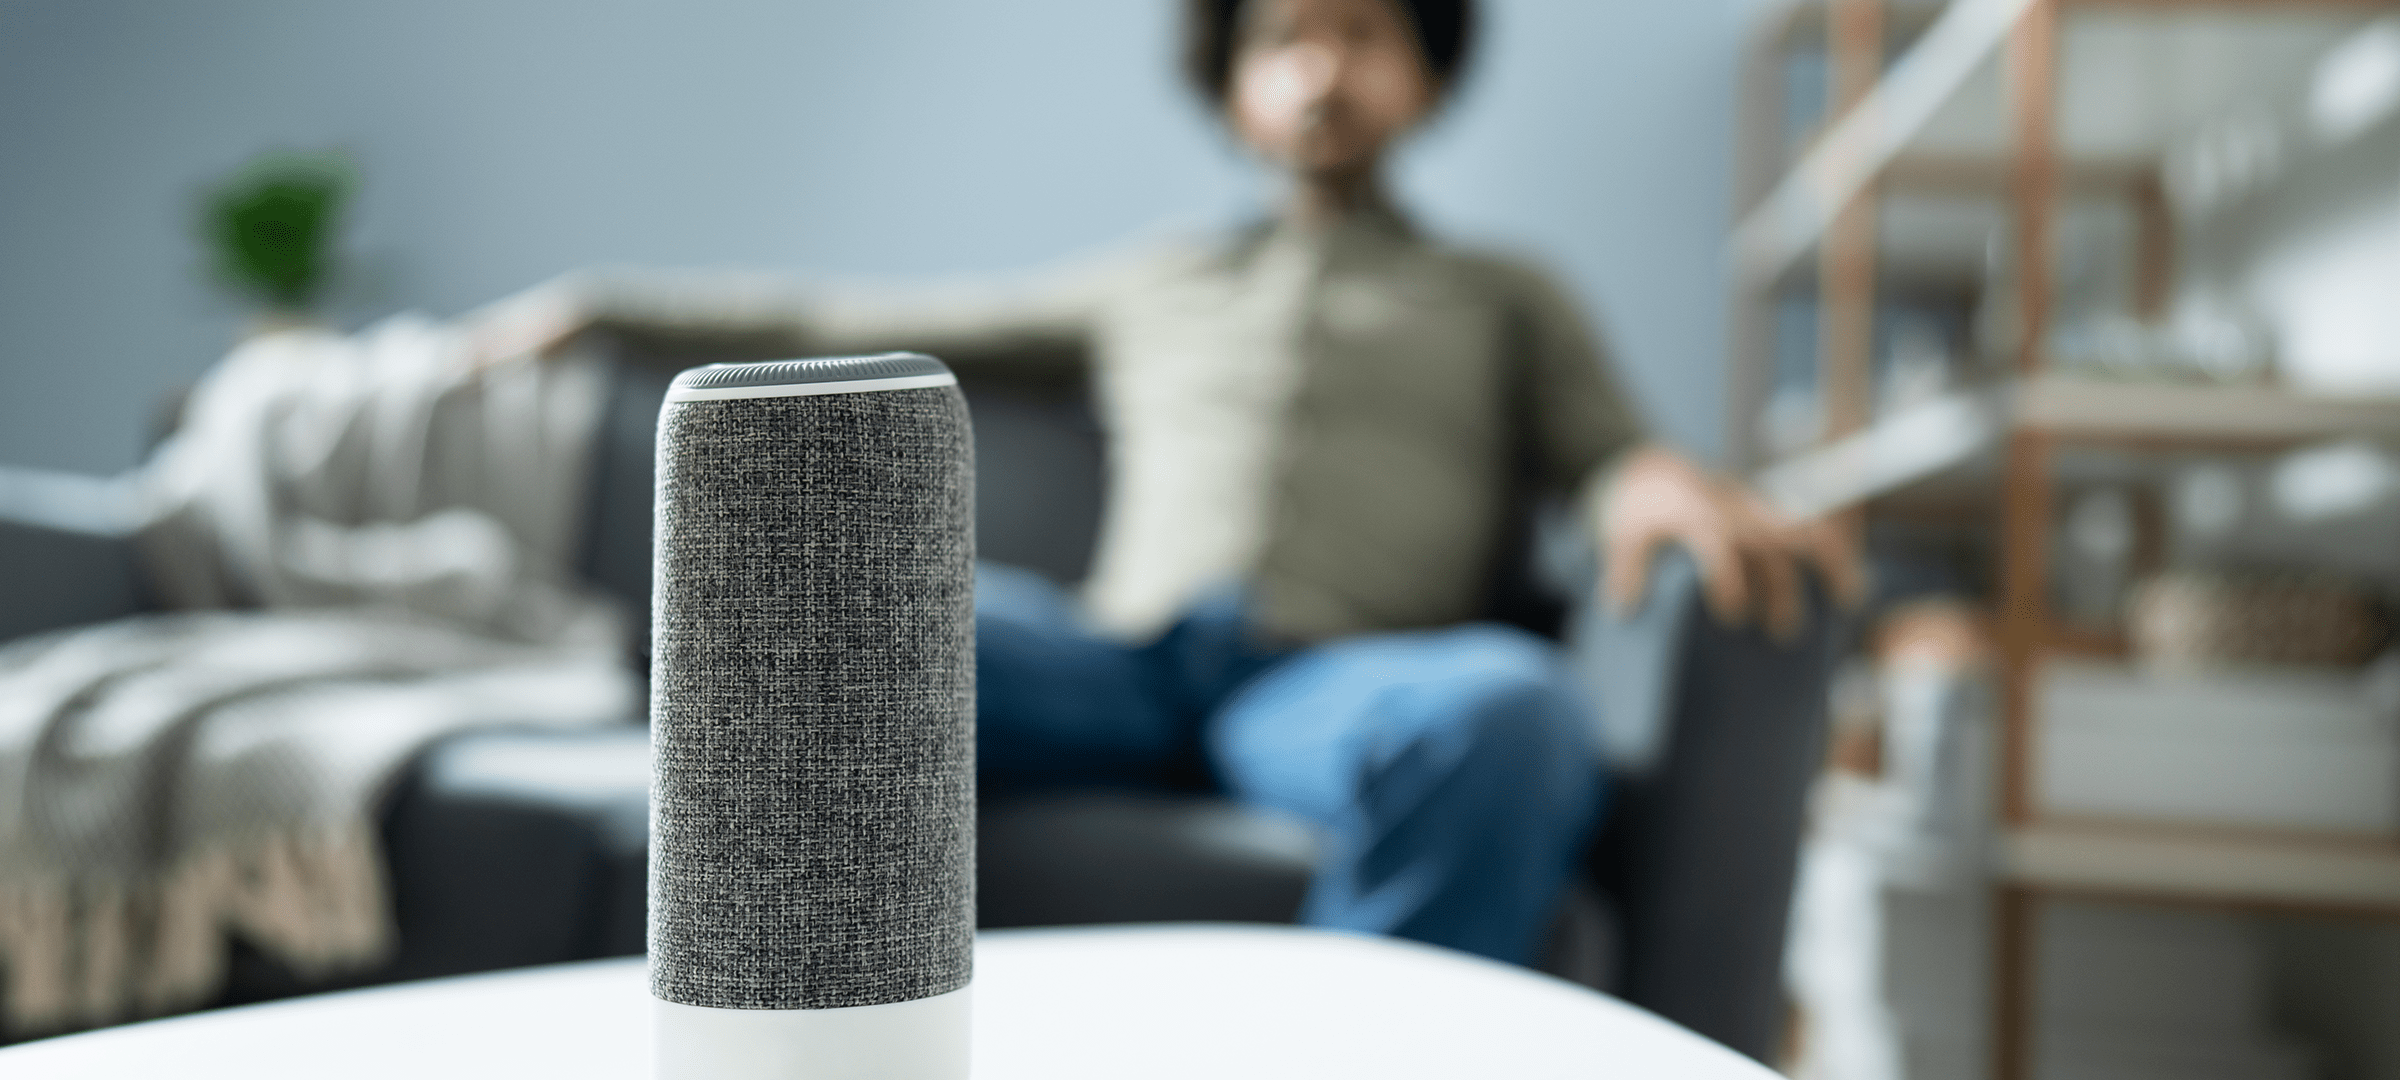 Man sitting with Voice Controlled Device